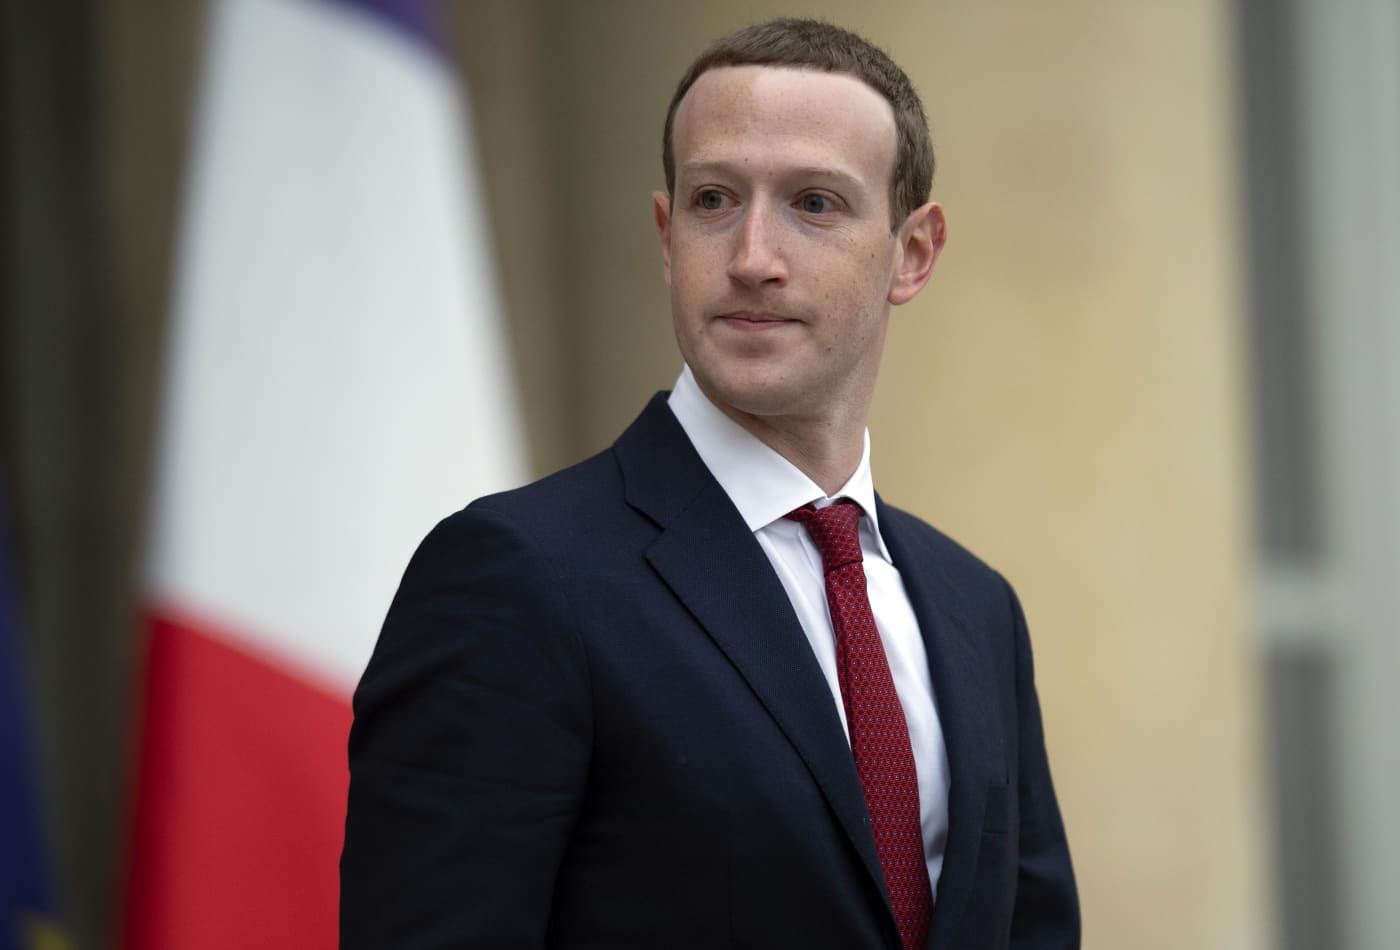 The Fed is looking into Facebook's Libra cryptocurrency as Powell flags 'serious concerns'